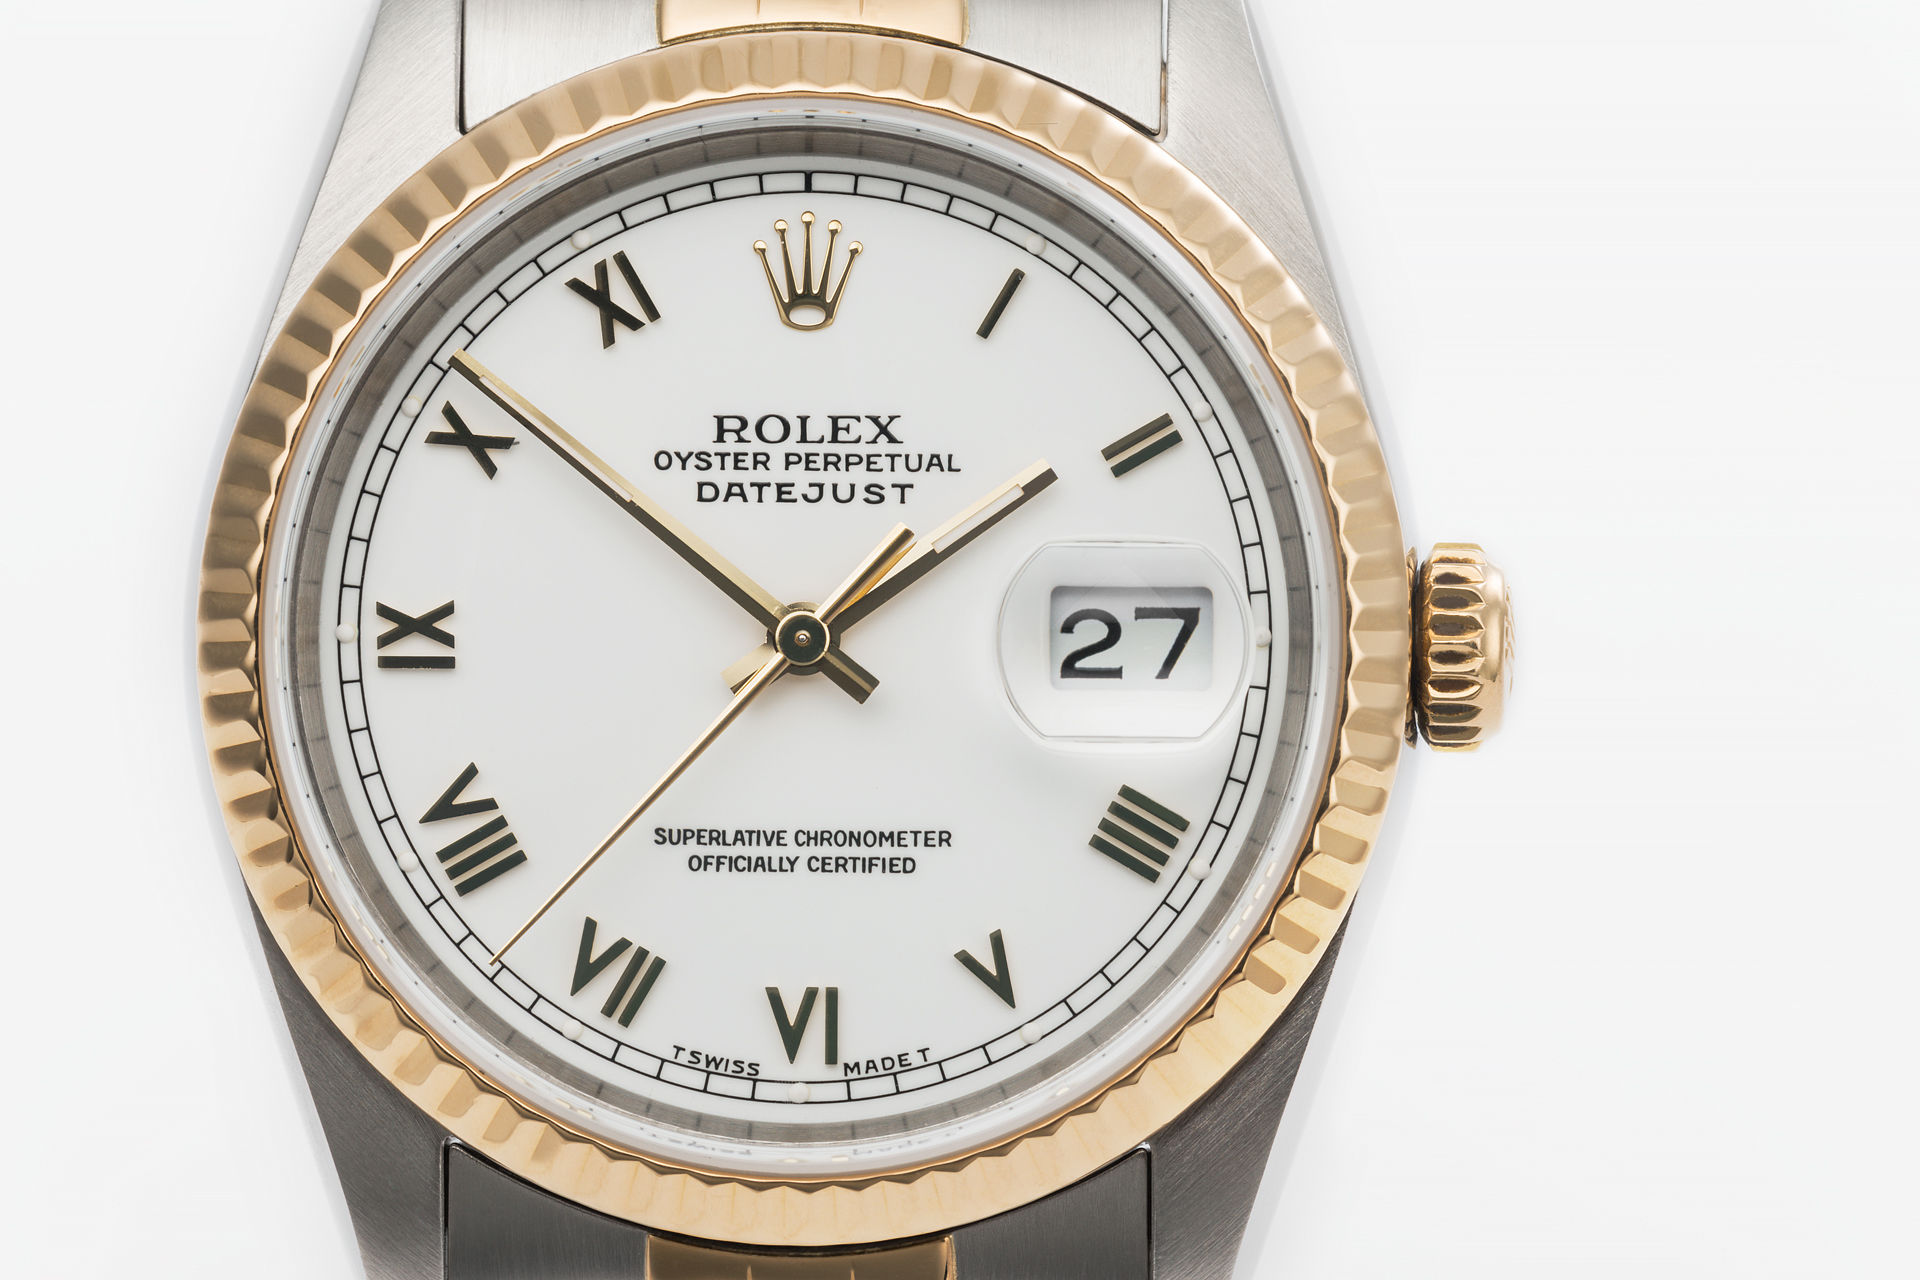 ref 16233 | Gentlemans 'Gold & Steel' | Rolex Datejust